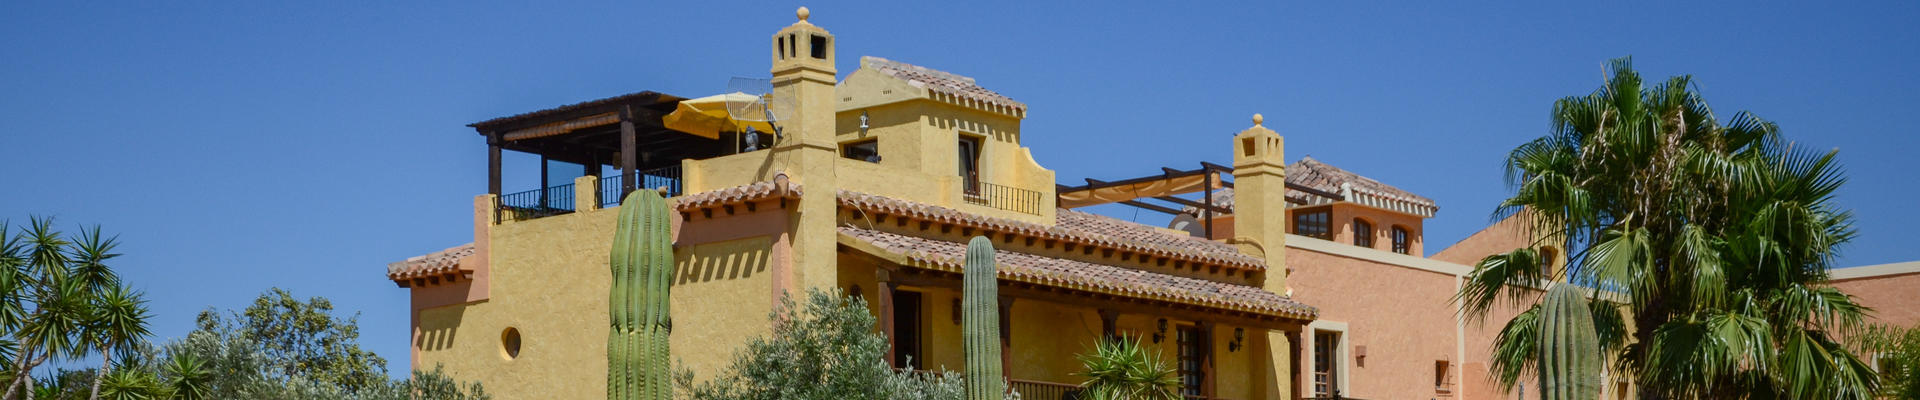 LV774: 3 Bedroom Townhouse for Sale